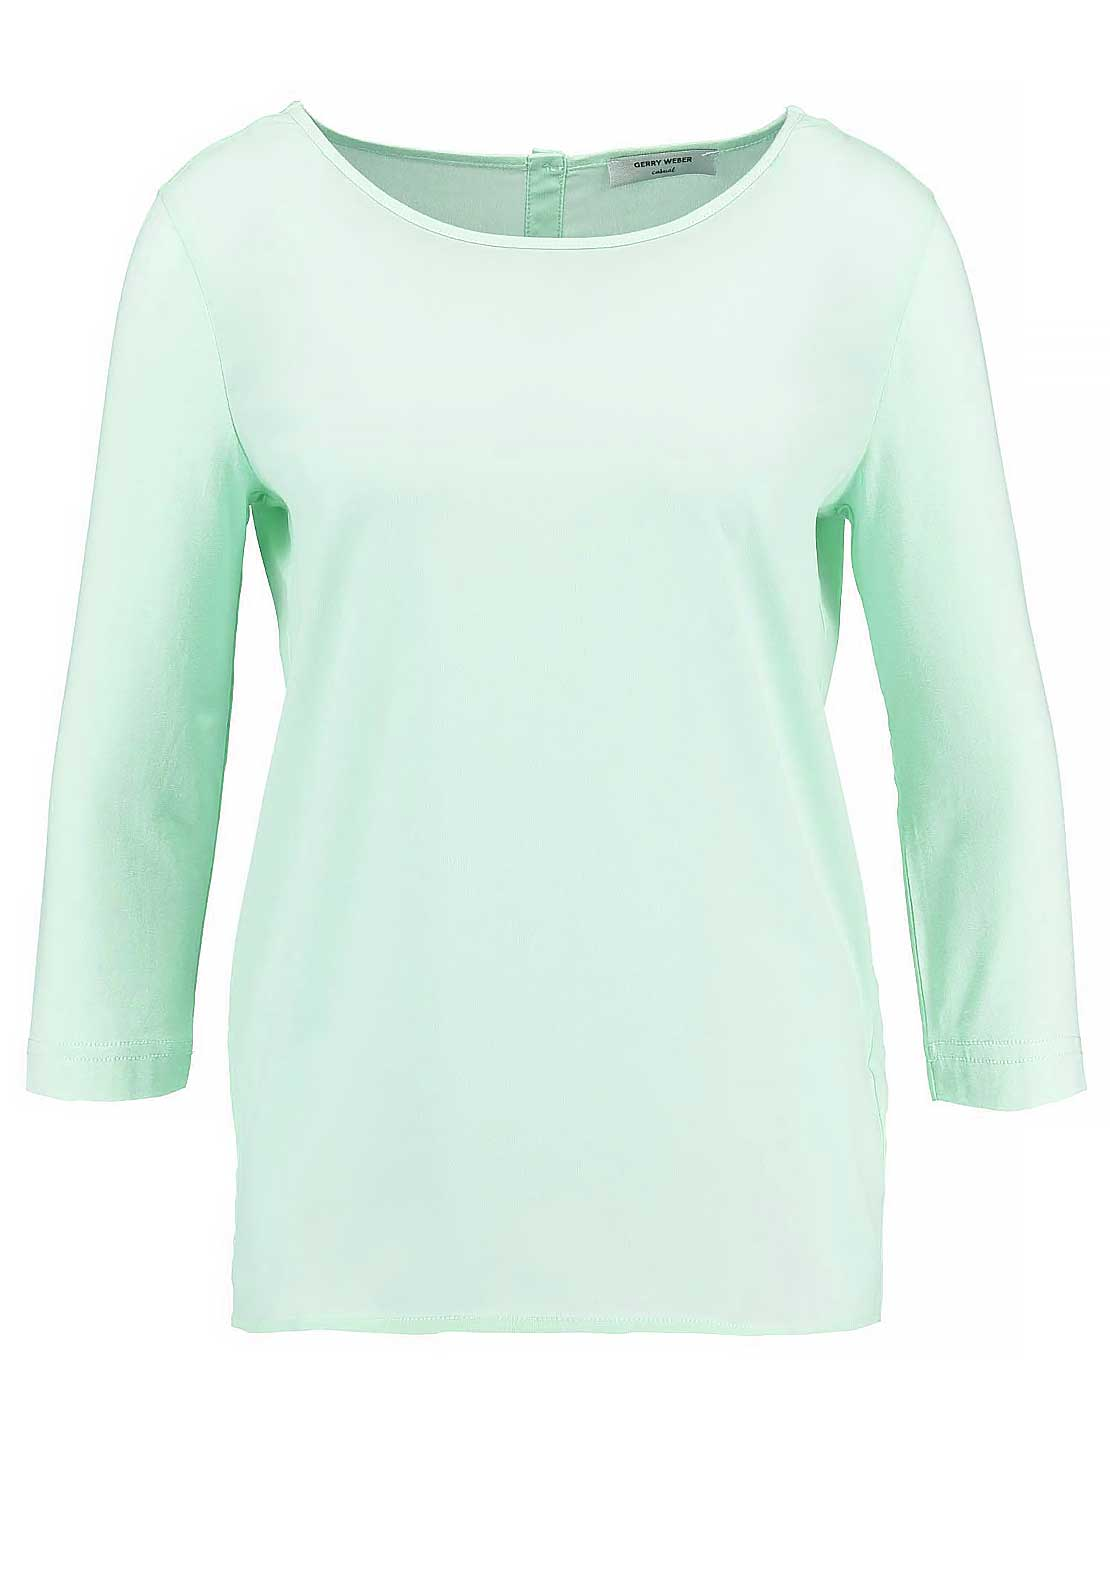 Gerry Weber Cropped Sleeve Chiffon Top, Mint Green